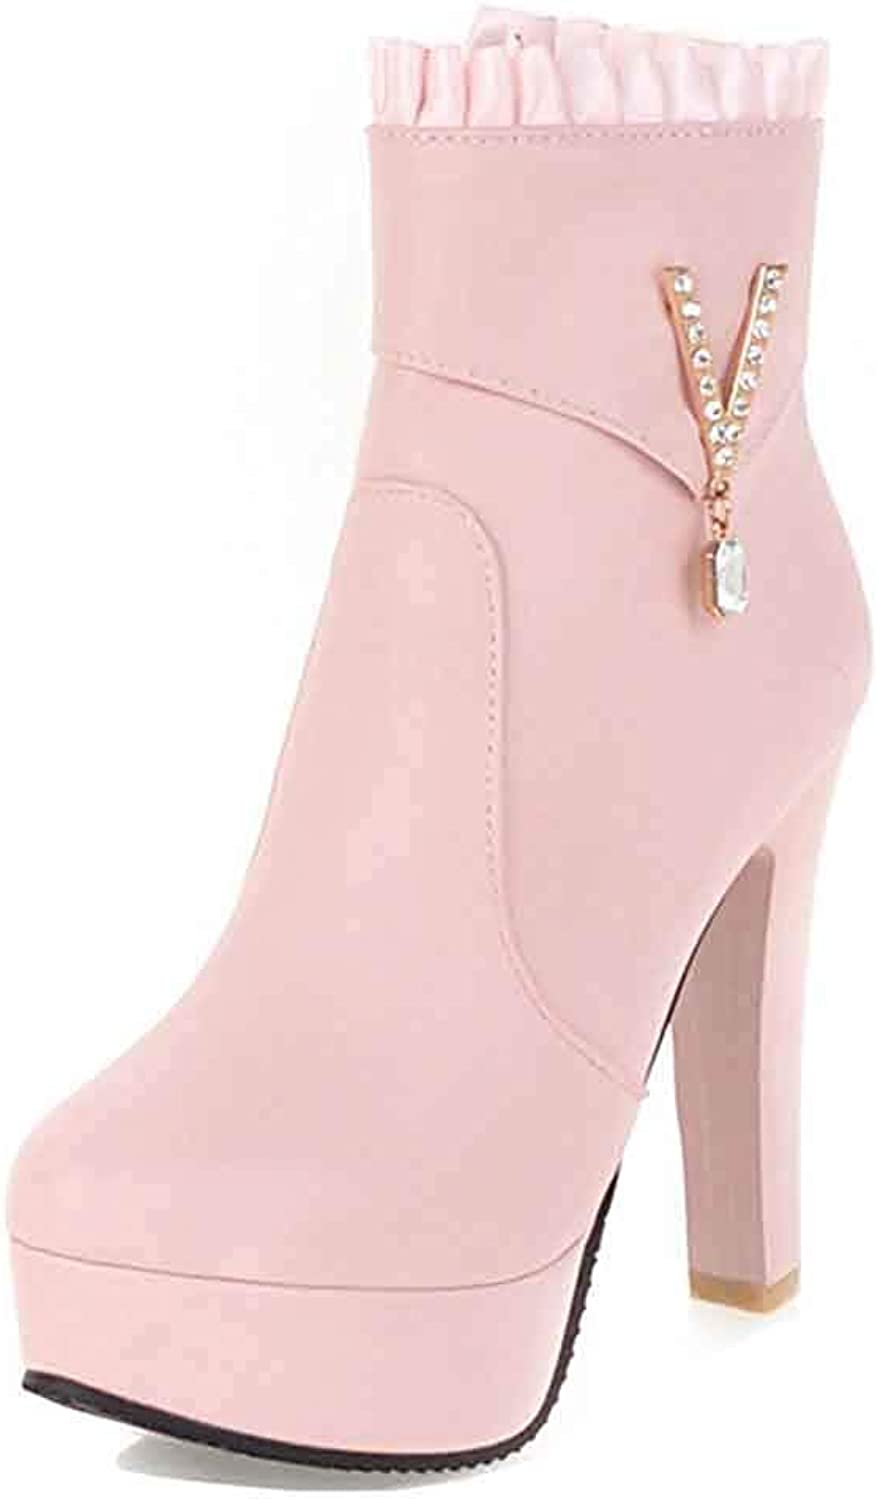 Unm Women's Rhinestone Platform Booties with Zipper - Chunky High Heel Dressy - Ruched Round Toe Ankle Boots